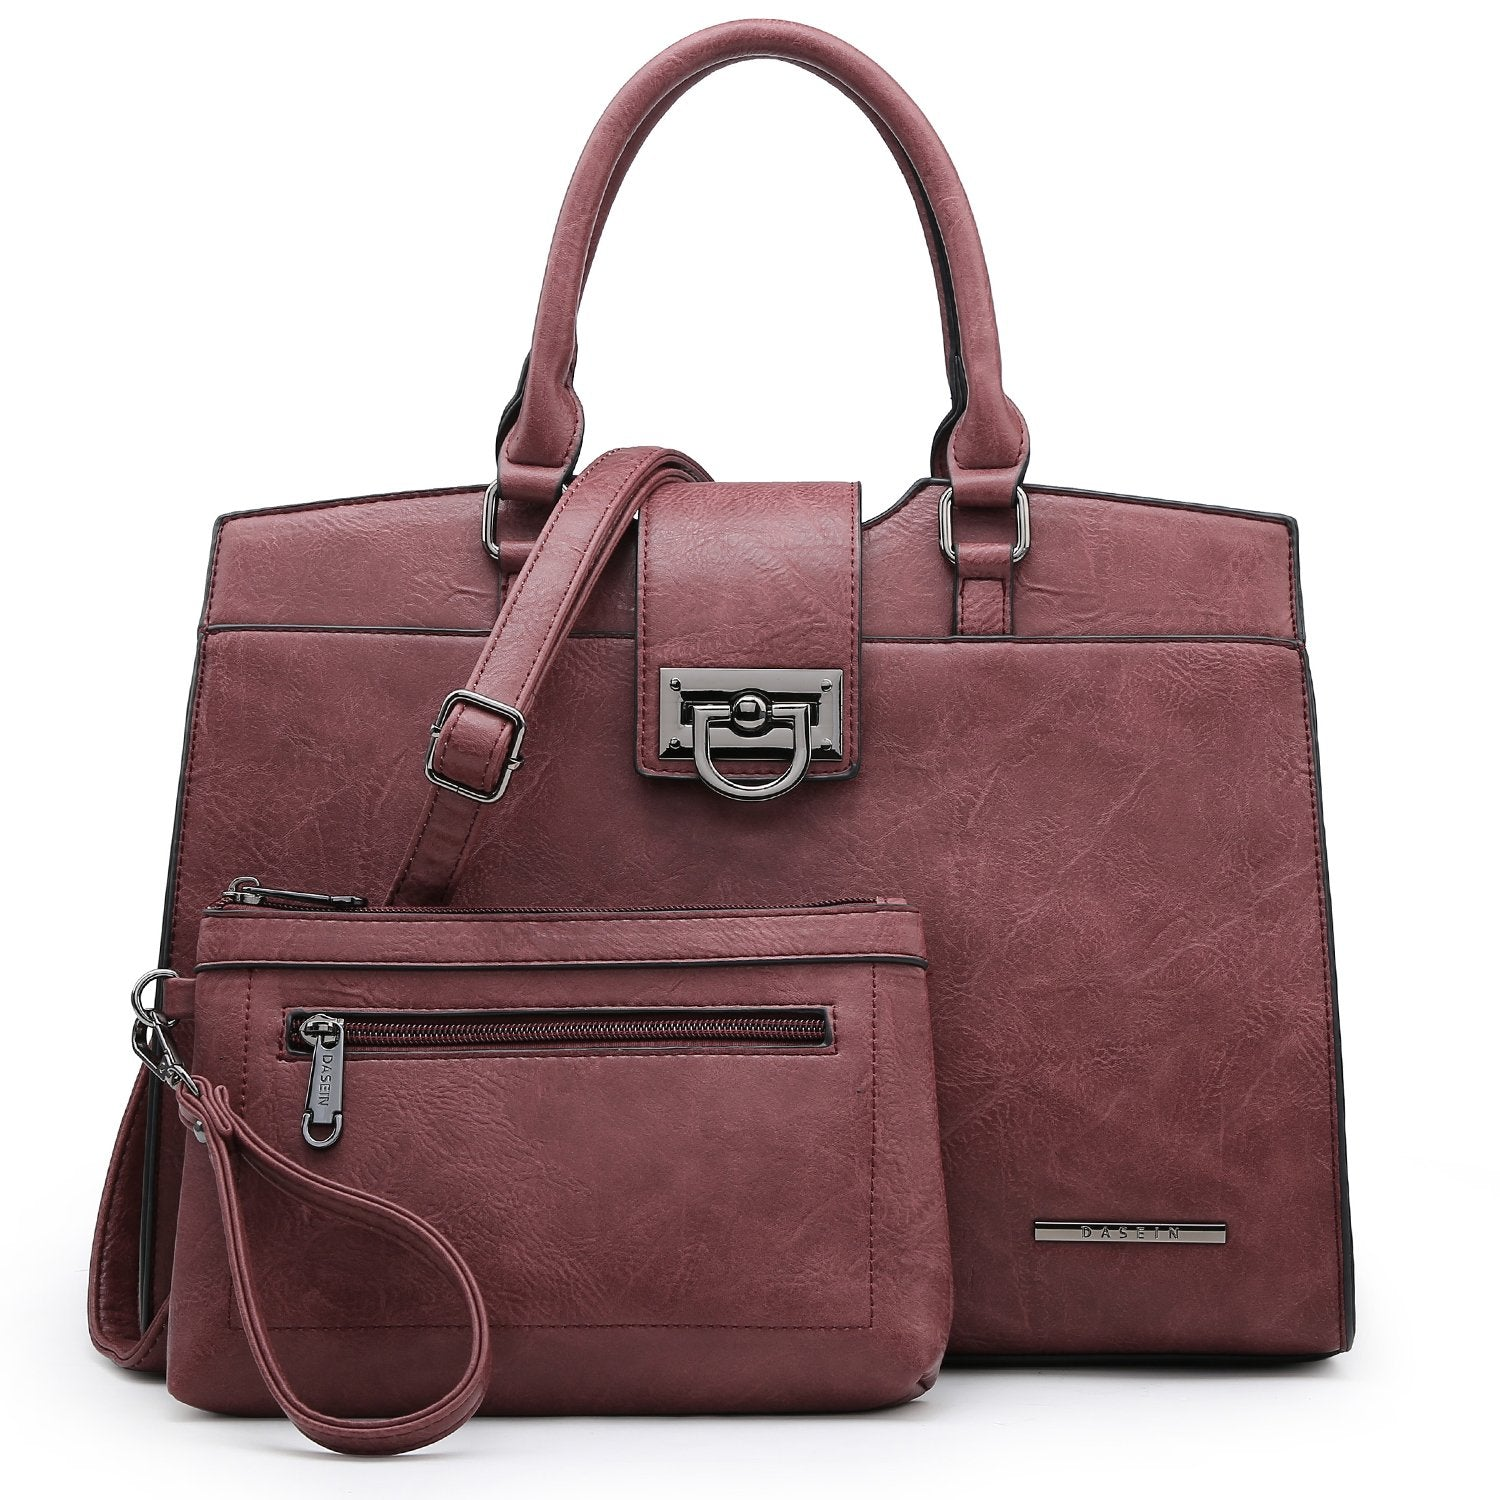 Solid-Color Satchel Handbag with Matching Wallet